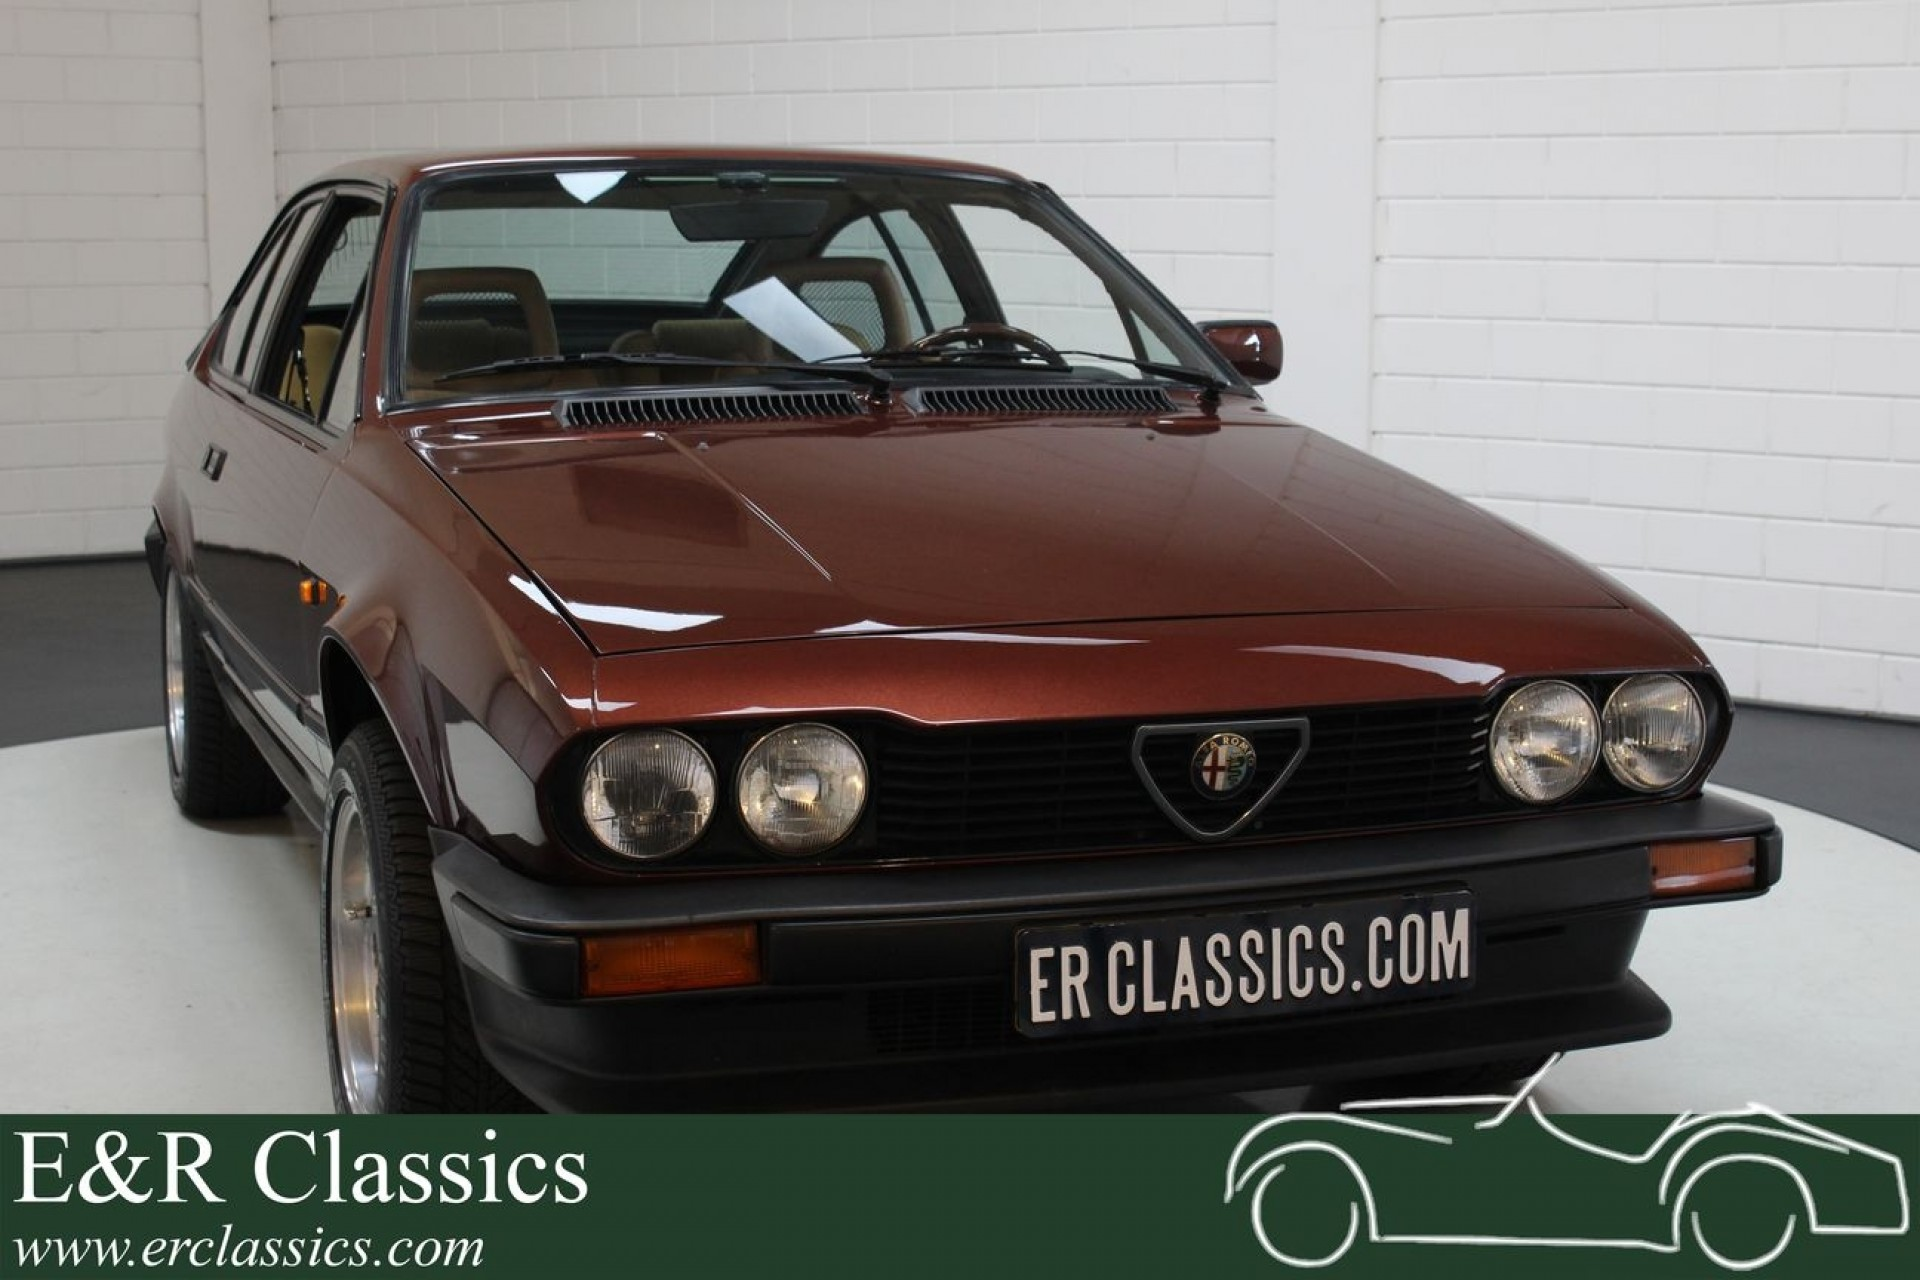 Alfa Romeo Alfetta Gtv 2 0 1986 For Sale At Erclassics